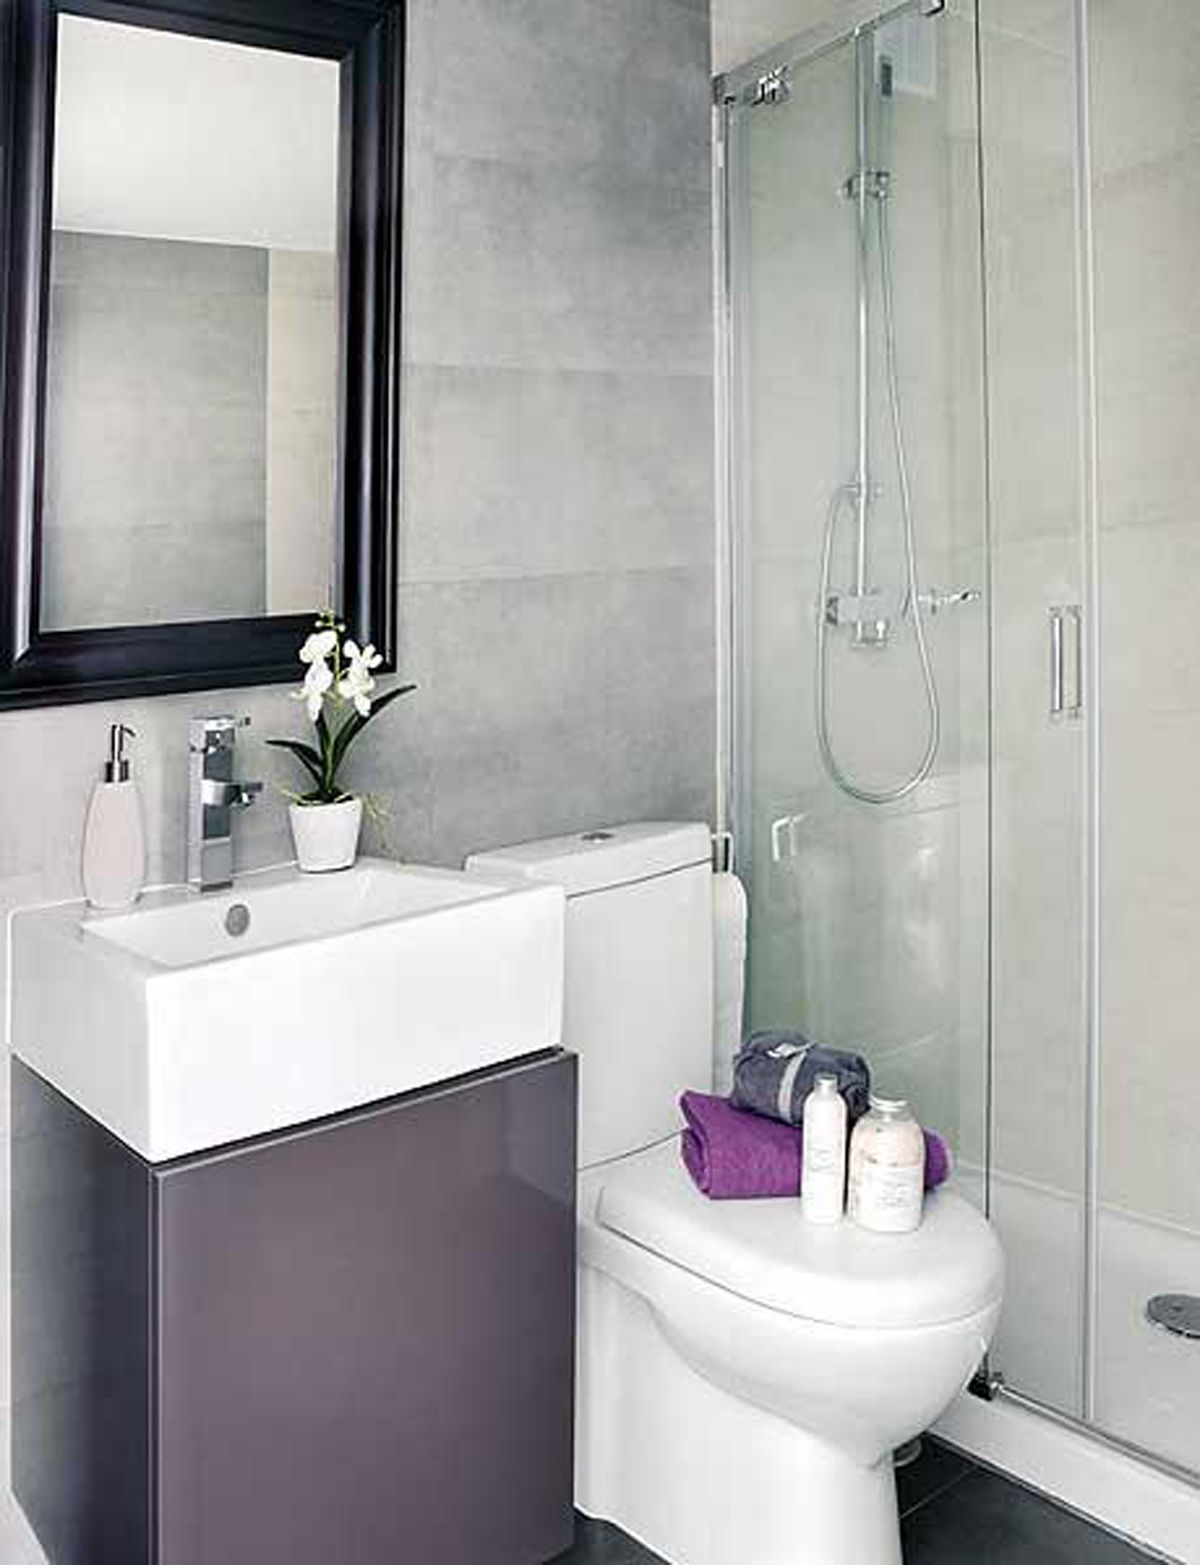 Small Bathroom Redesign Intrinsic Interior Design Applied In Small Apartment Architecture